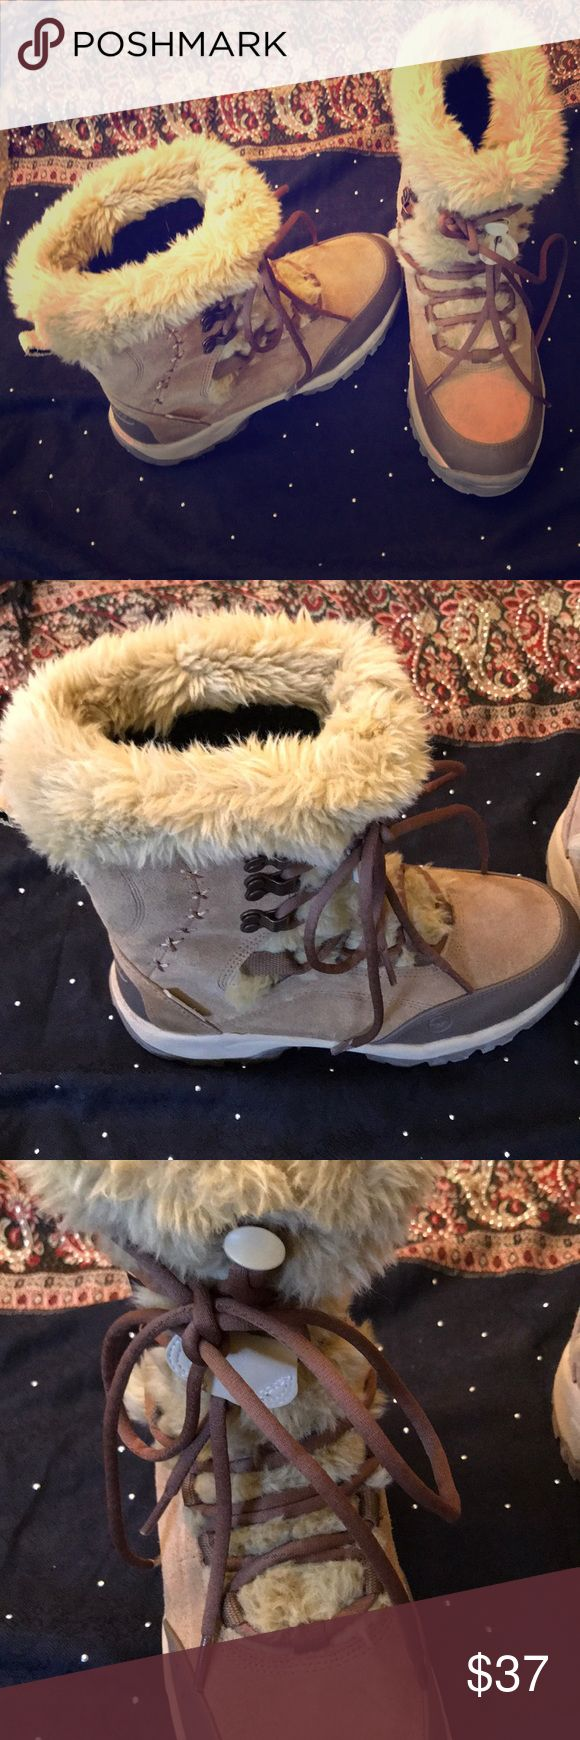 Women's Winter Boots Women's Hi-Tec Winter Boots. Insulated and extremely warm. Worn once. Like new. Hi-Tec Shoes Winter & Rain Boots